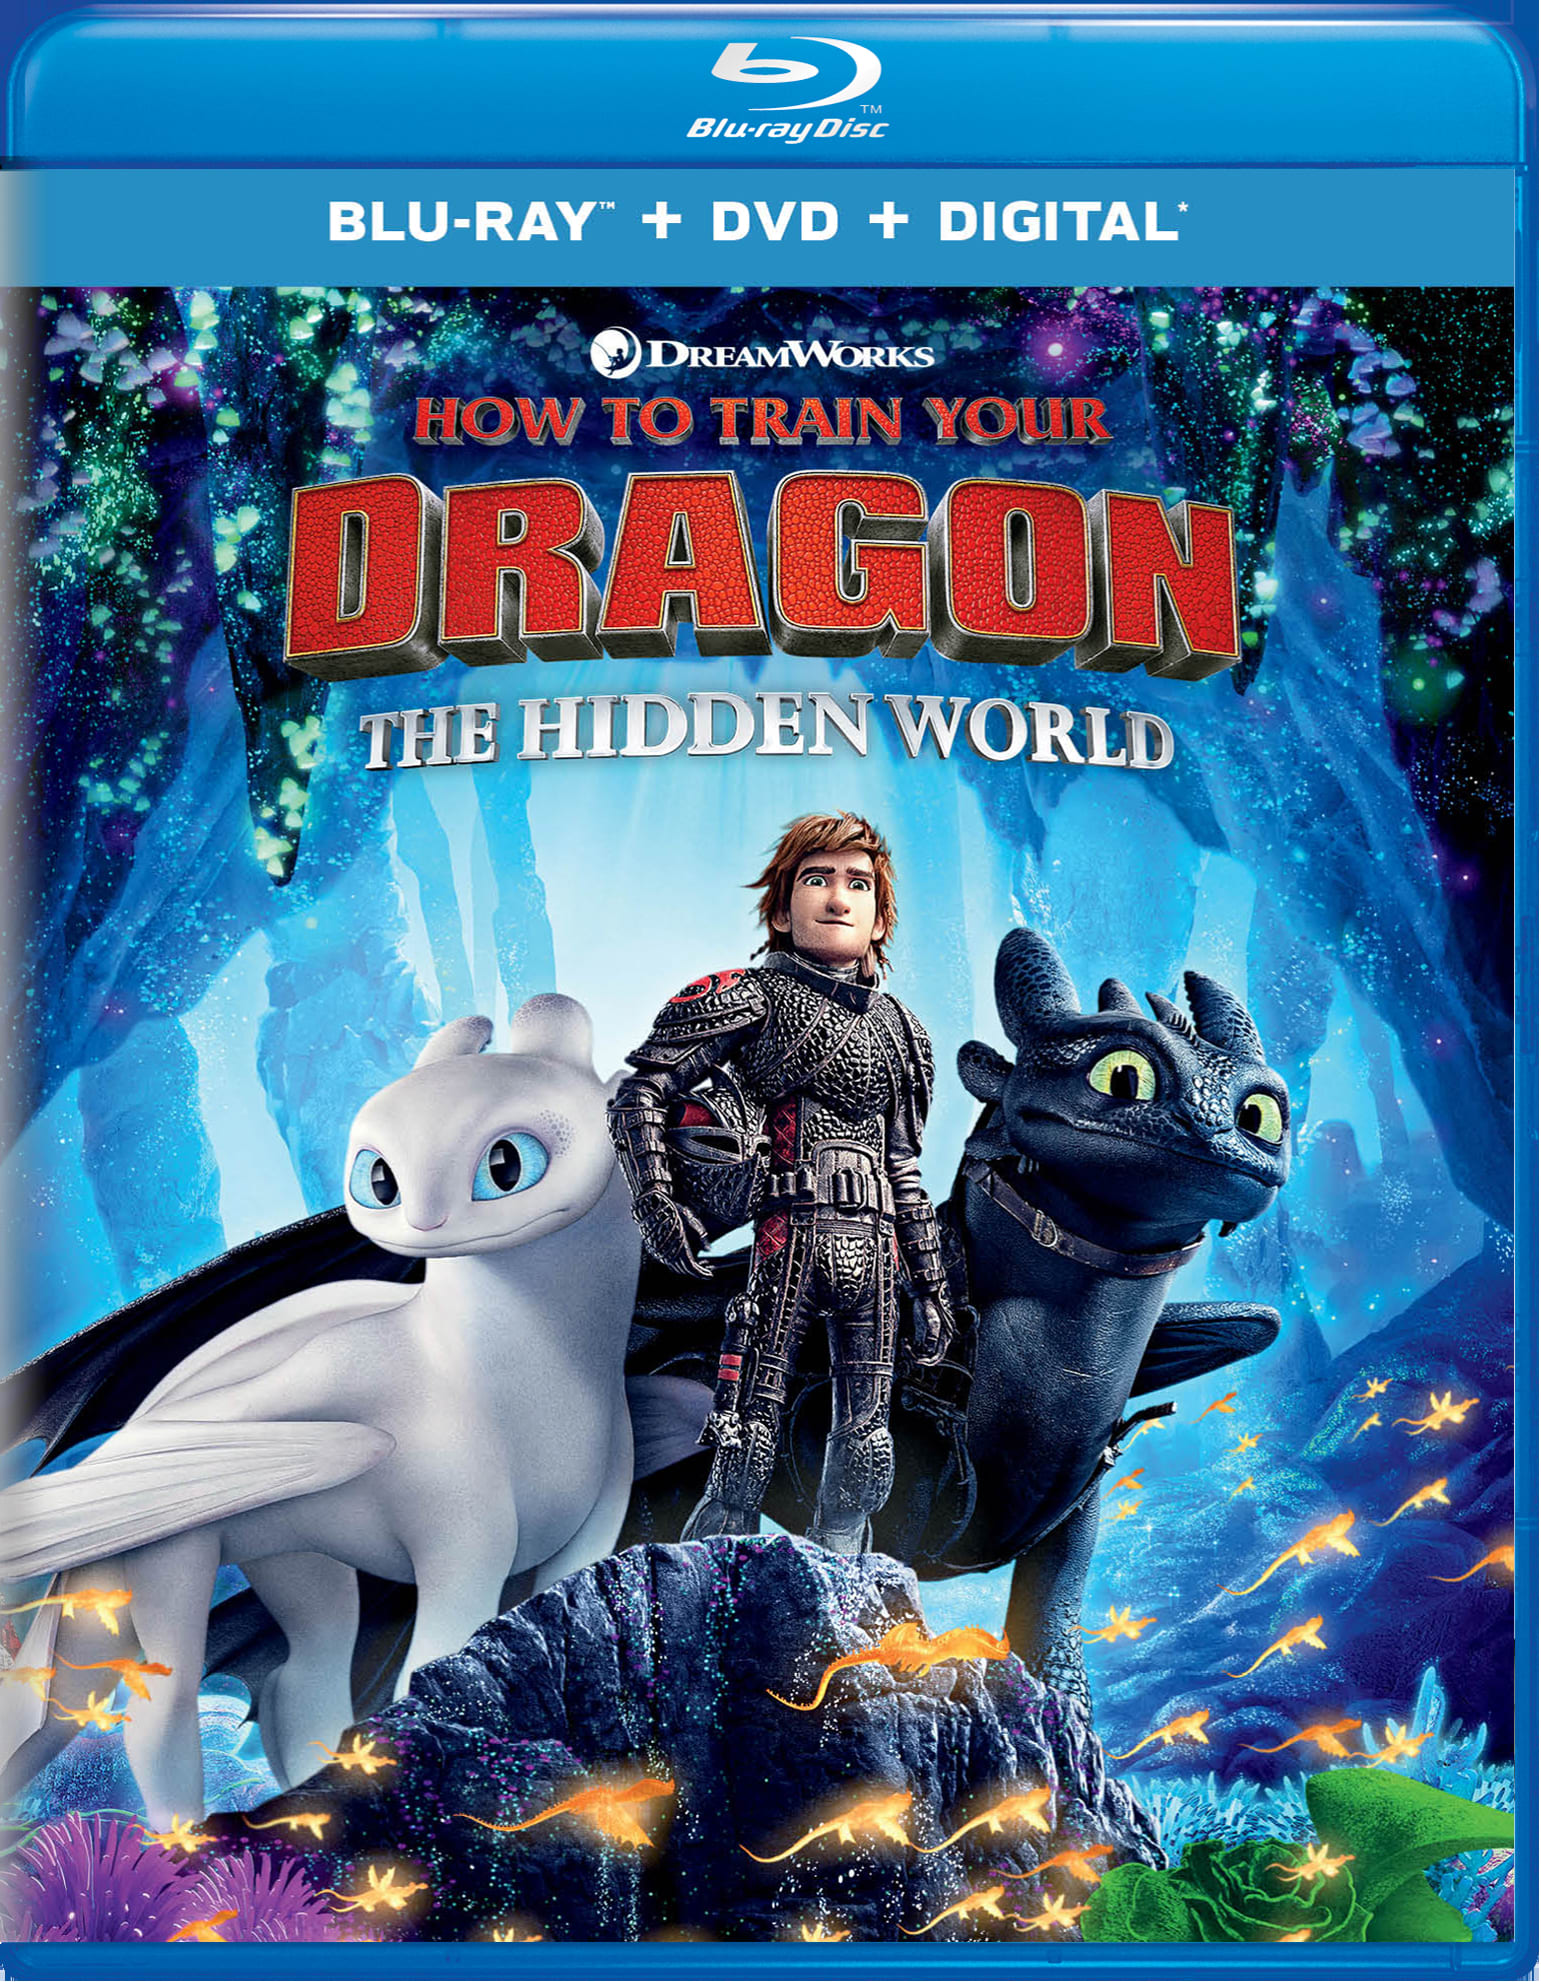 How to Train Your Dragon - The Hidden World (DVD + Digital) [Blu-ray]